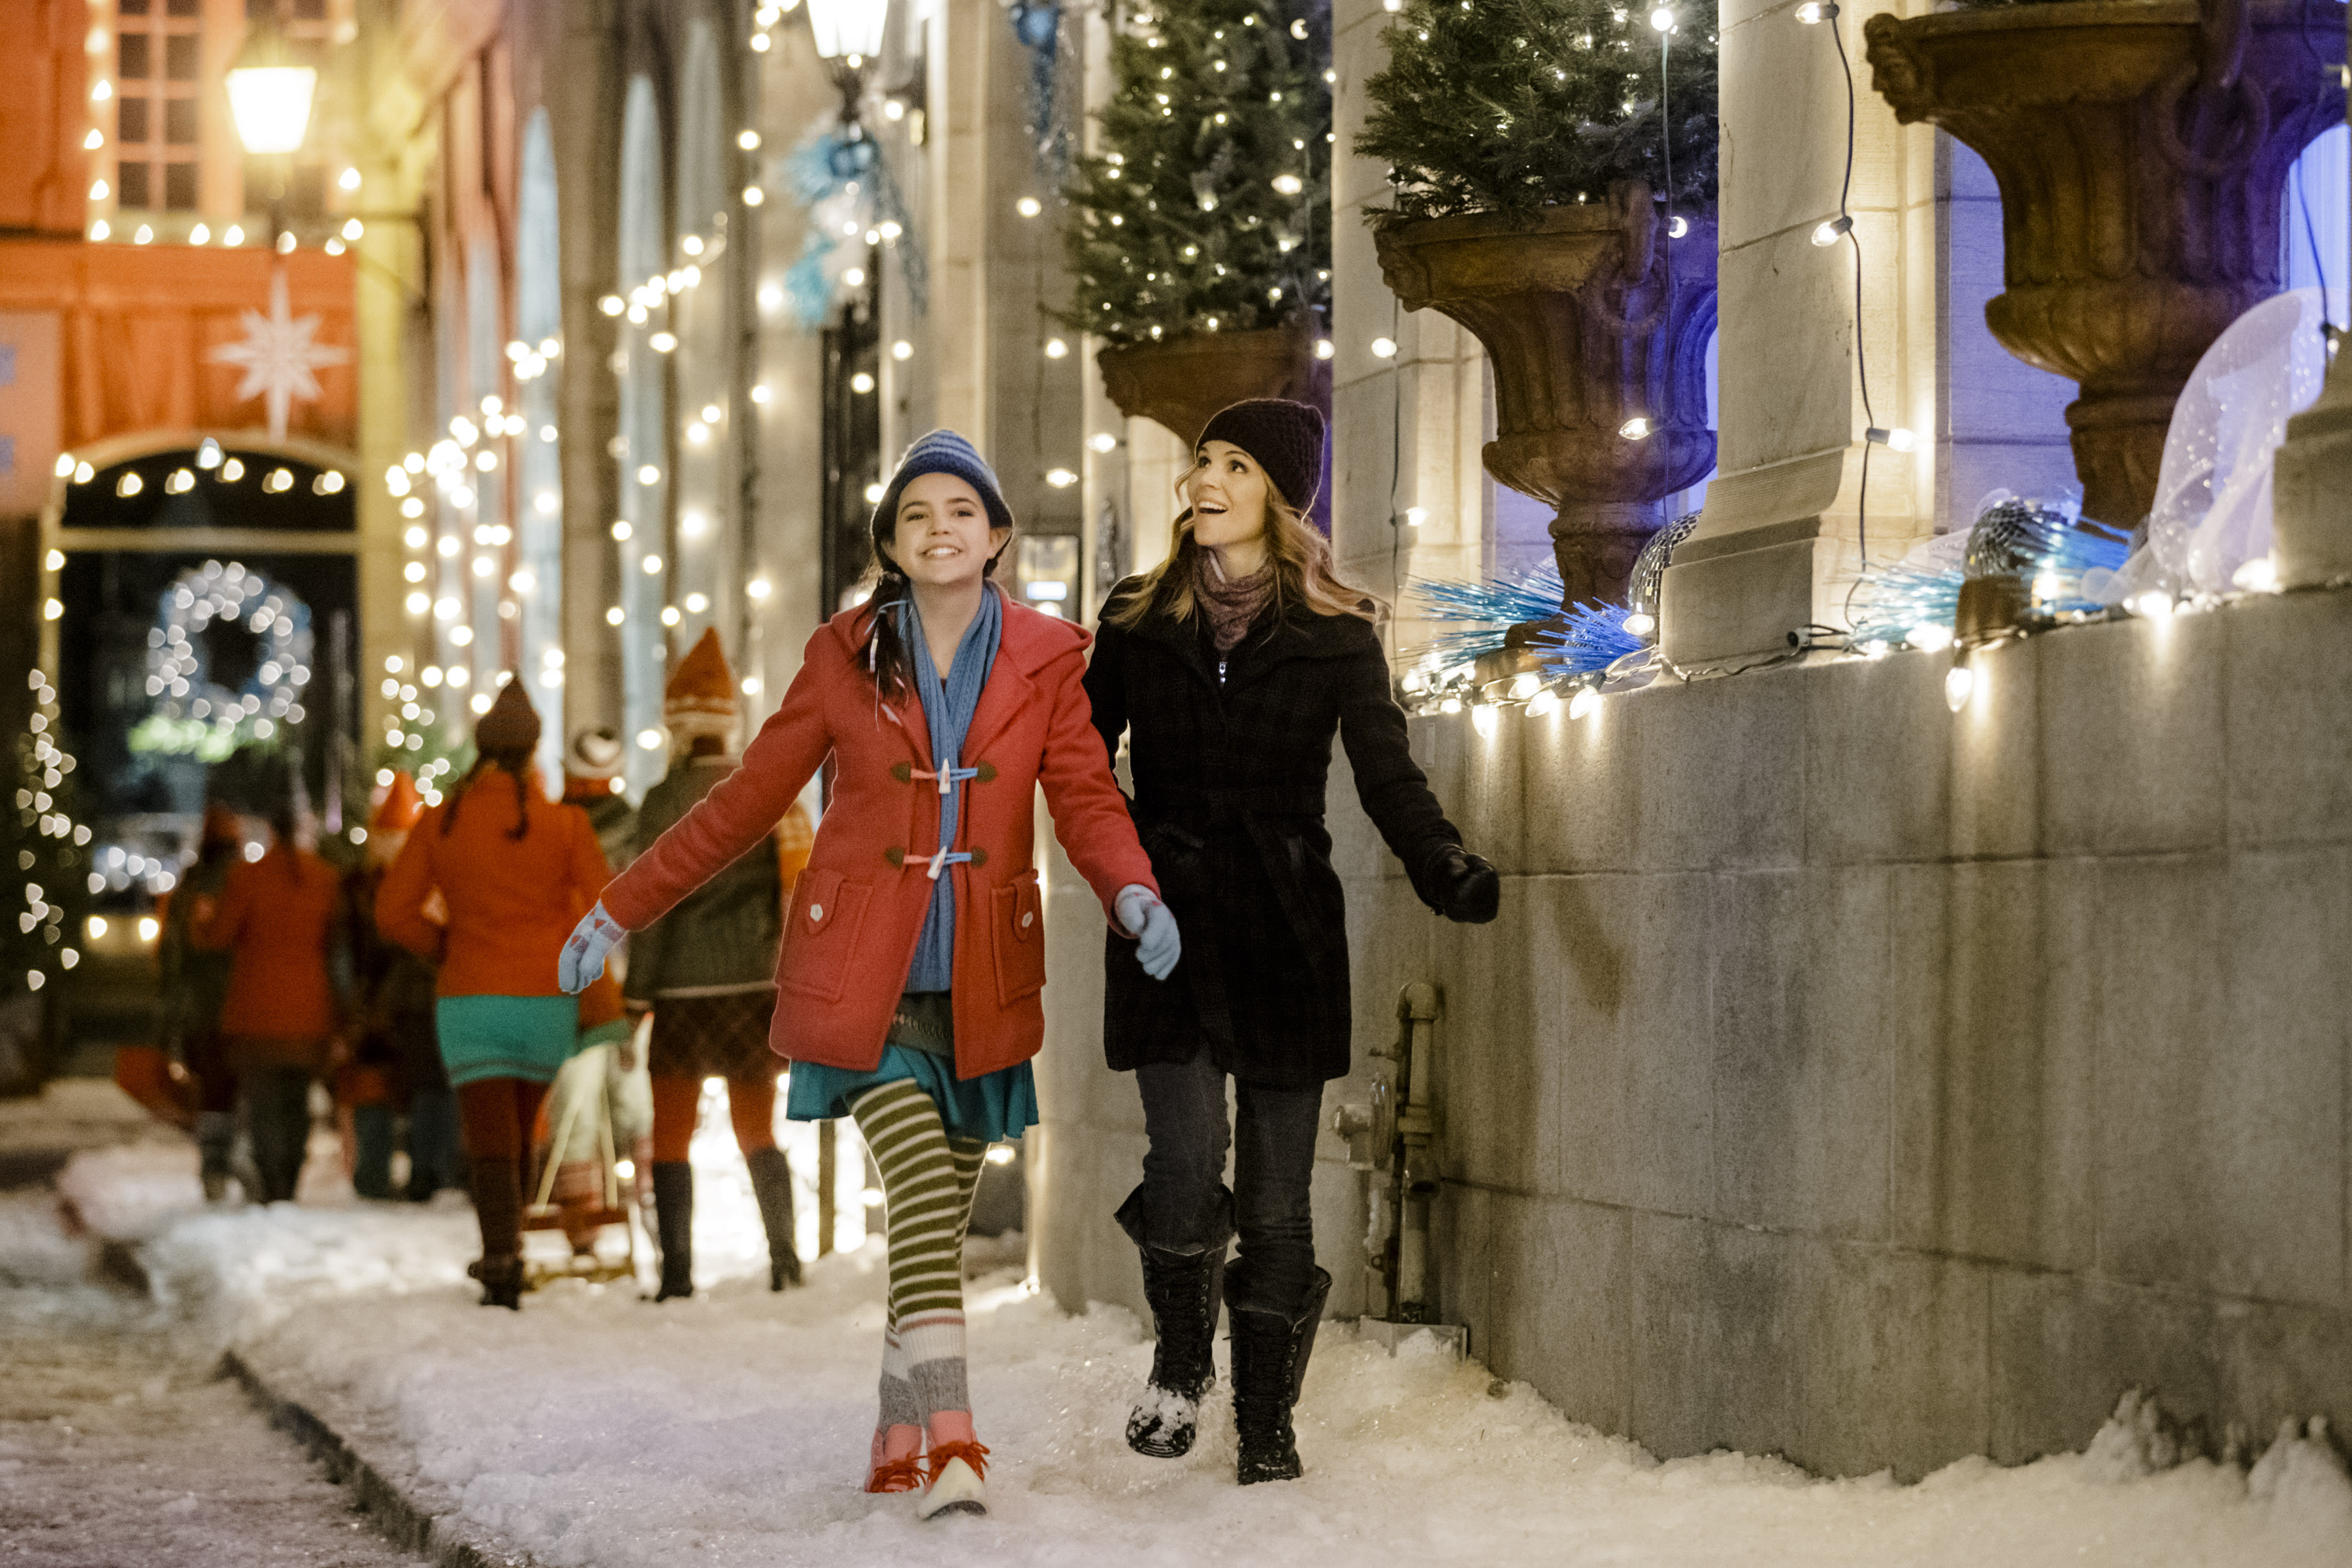 Countdown To Christmas Complete Programming on Hallmark Channel